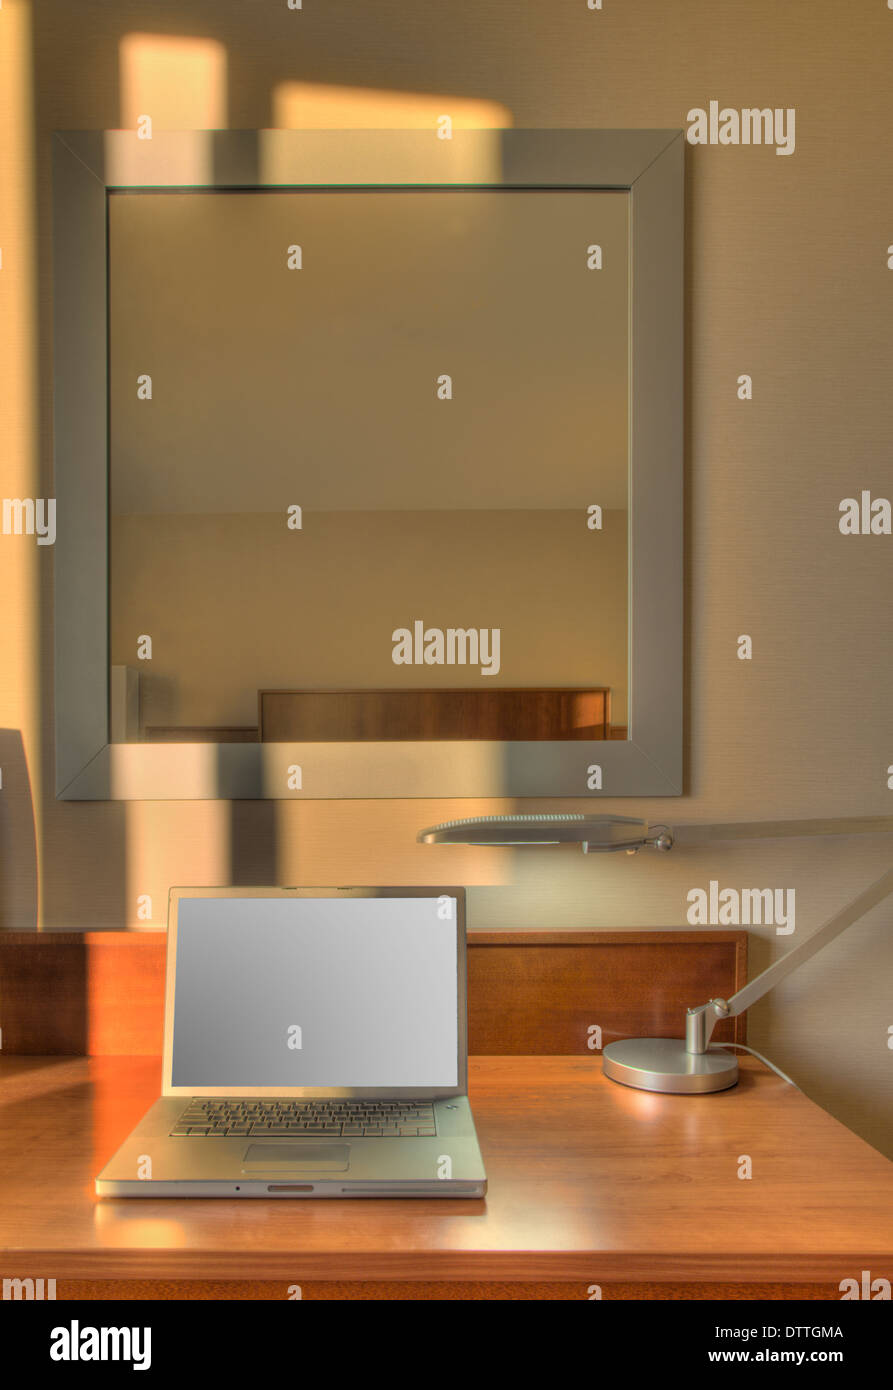 Laptop on desk in hotel room - Stock Image